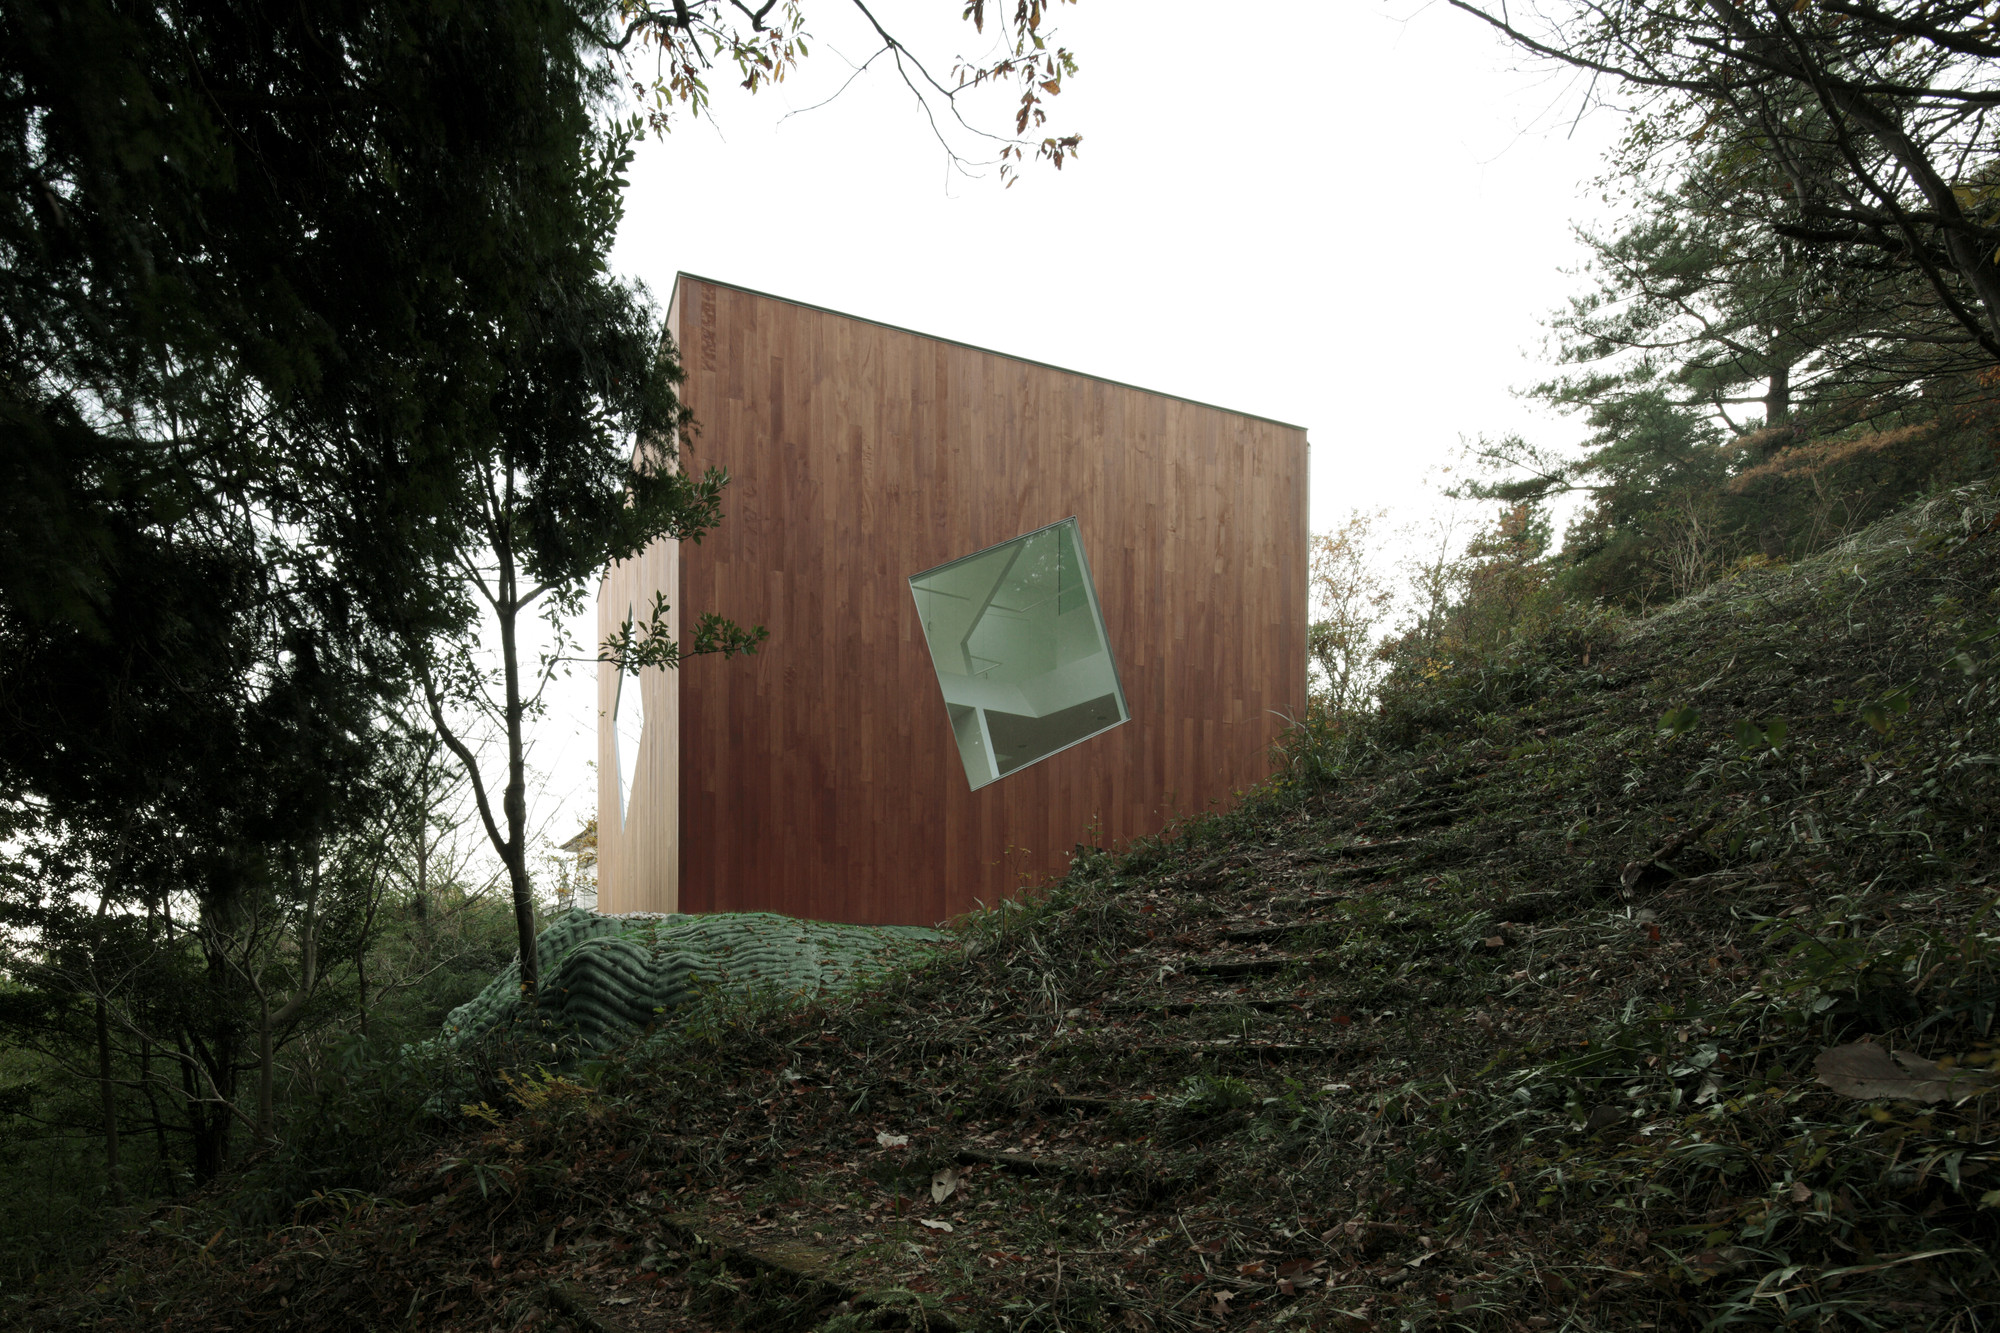 Courtesy of Yuusuke Karasawa Architects